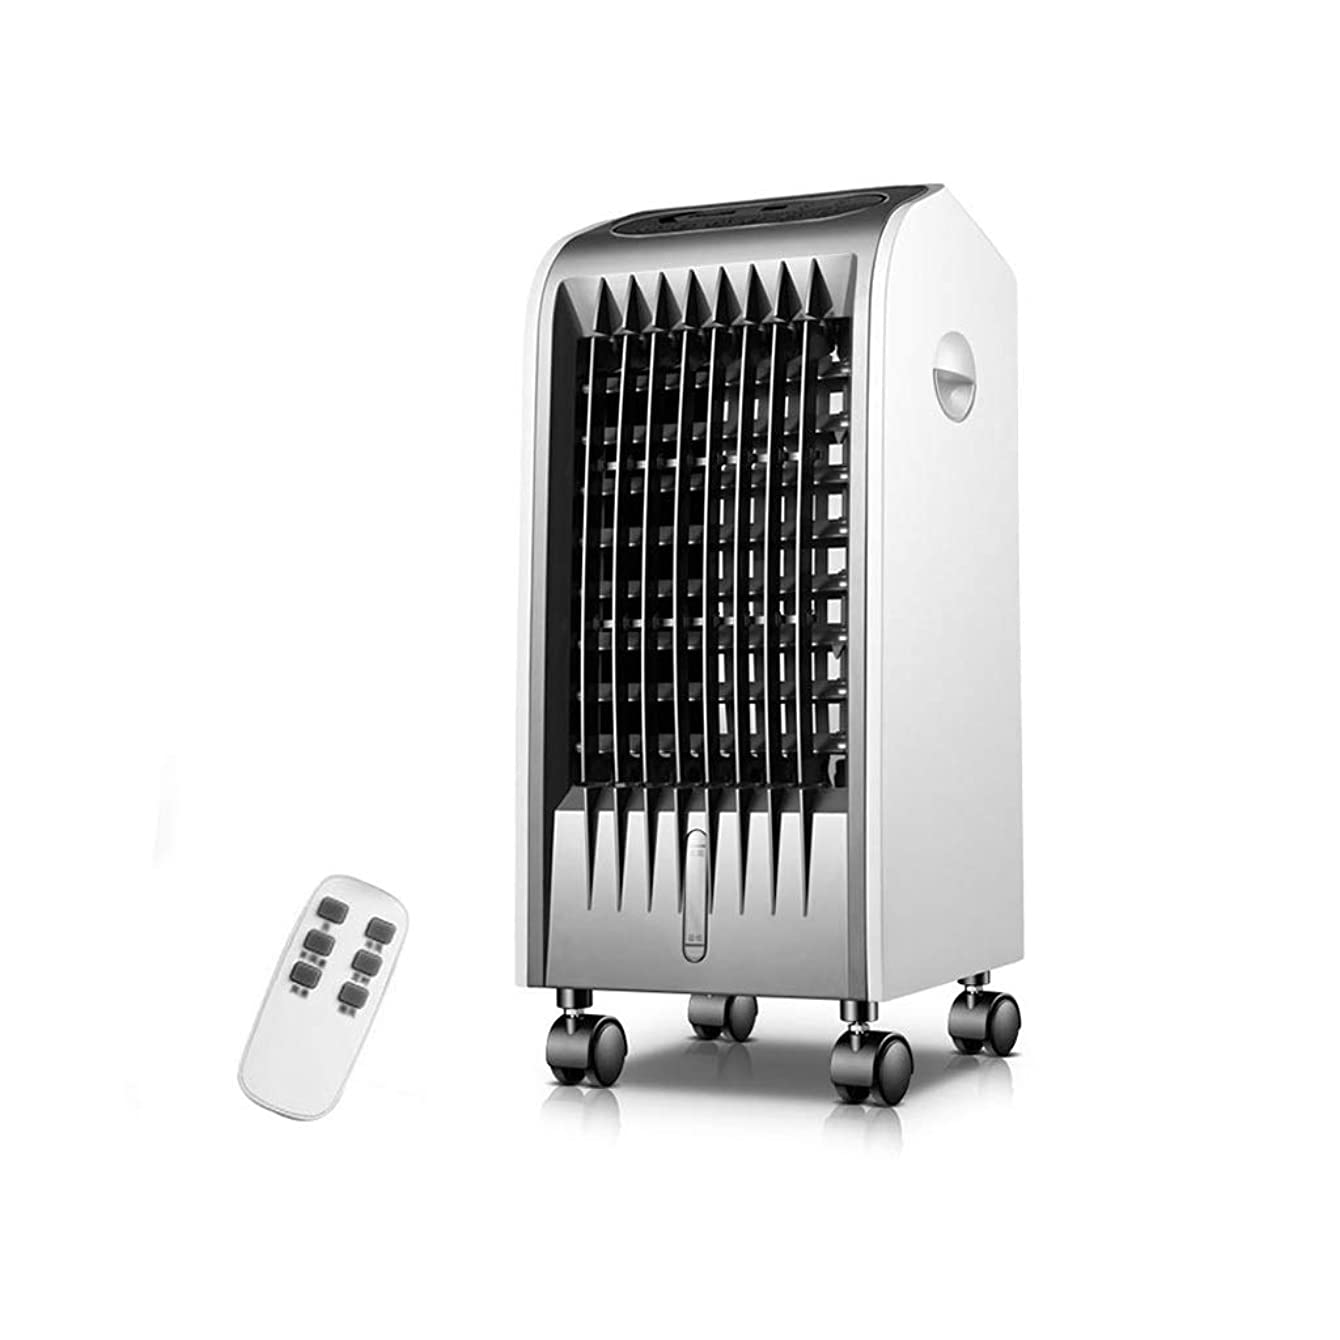 Space coolers Air Coolers Evaporative Remote Control Air Conditioner Ultra-Quiet for Bedroom Living Room White